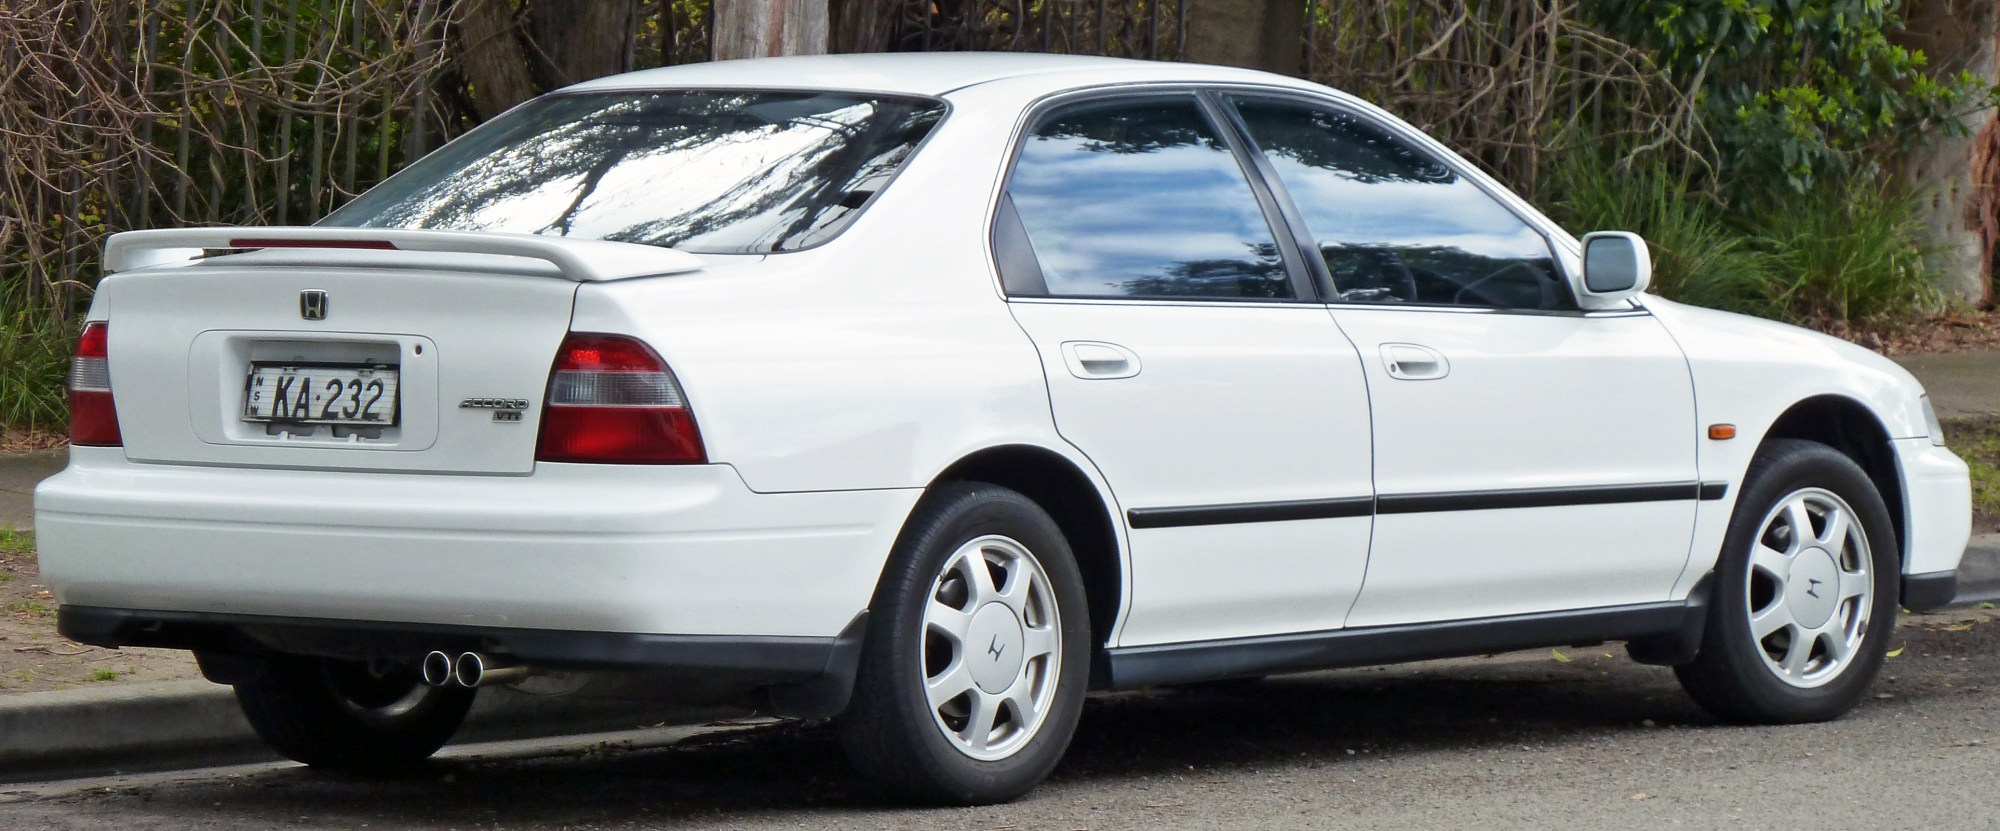 hight resolution of file 1993 1995 honda accord vti sedan 02 jpg